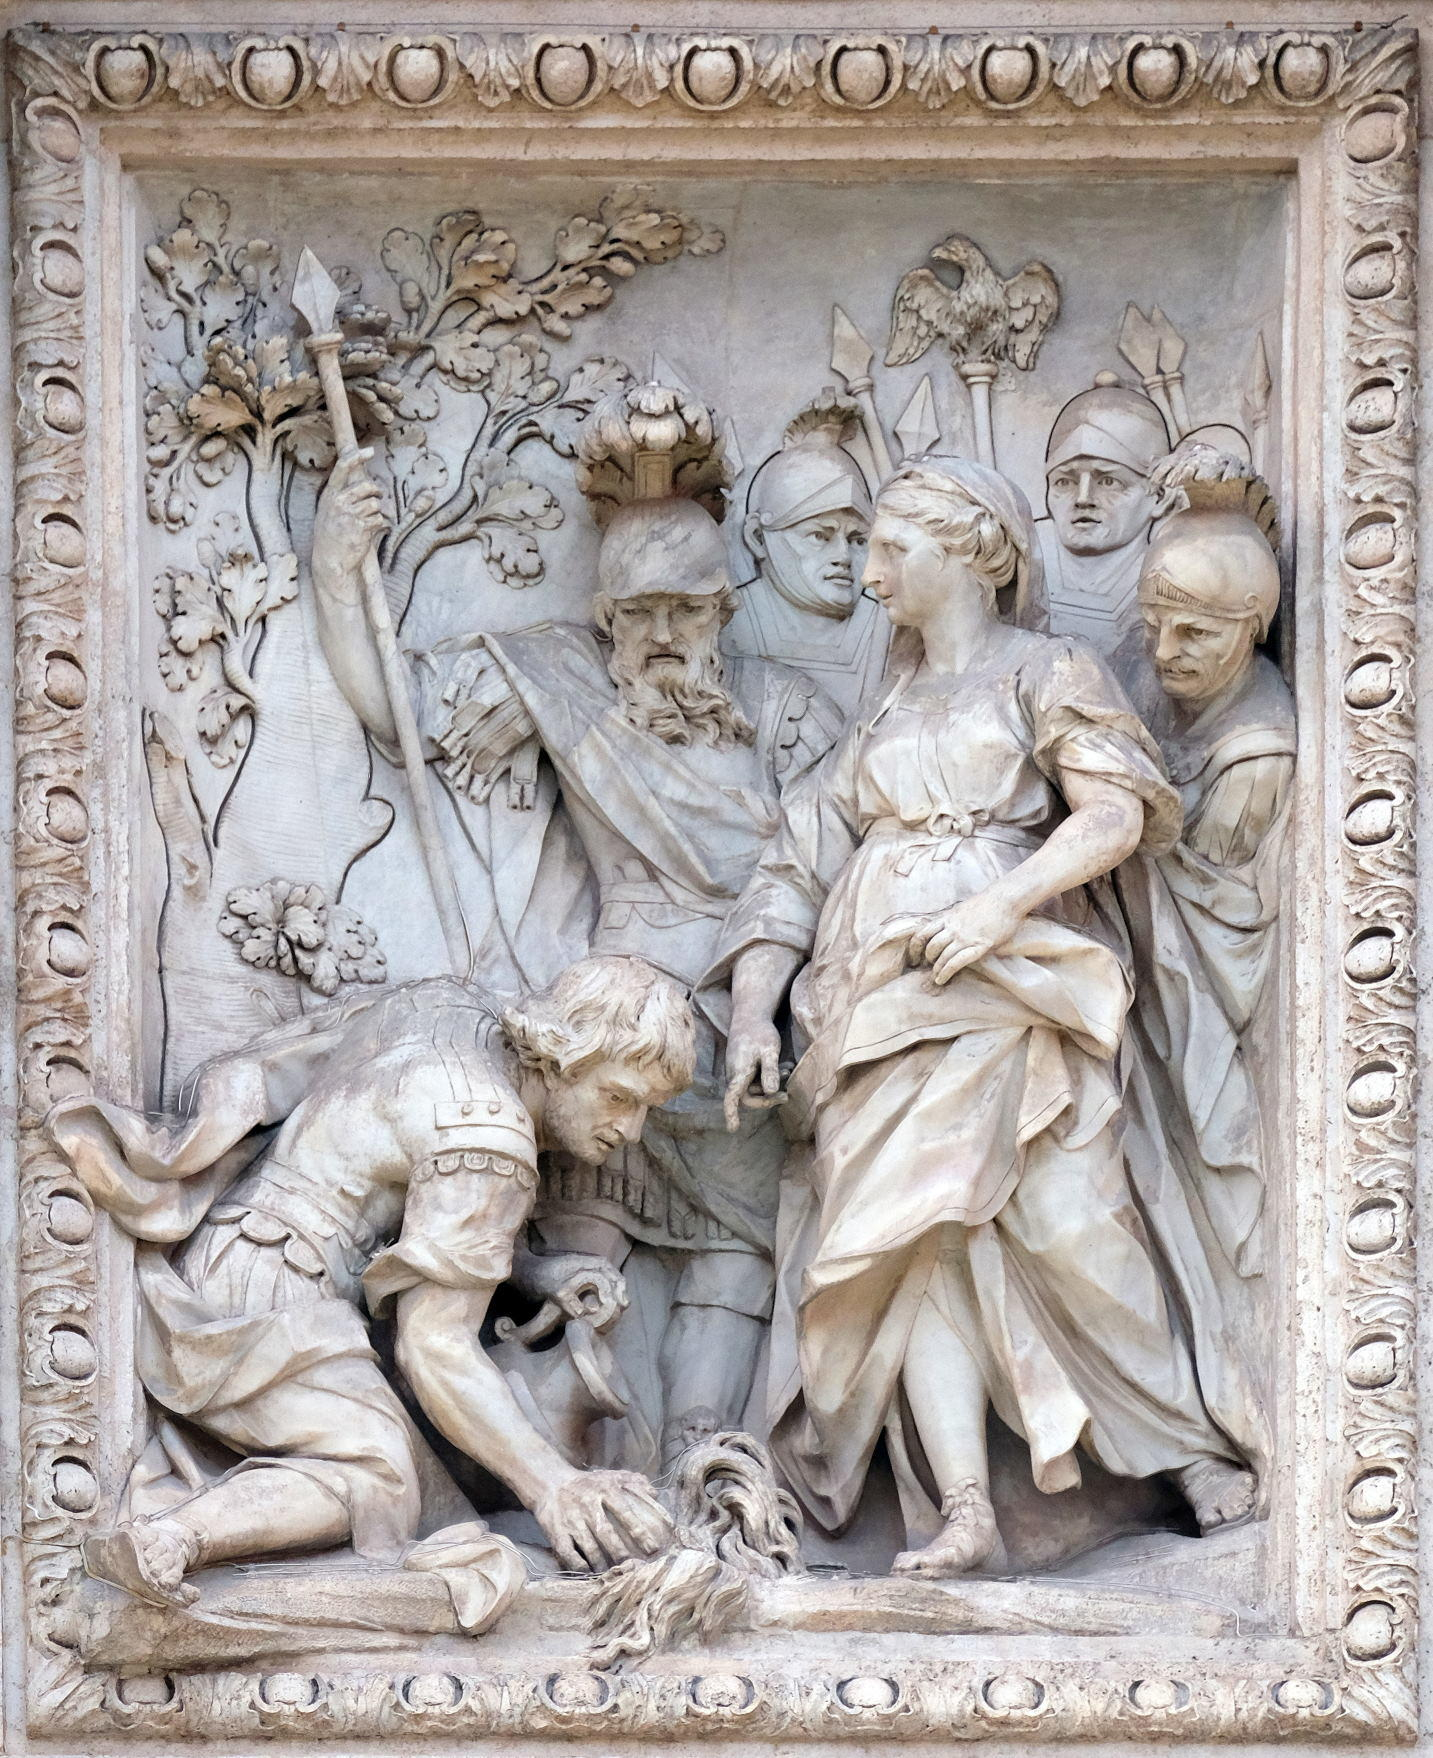 The maiden (virgo) showing Agrippa the spring at the Trevi Fountain in Rome.